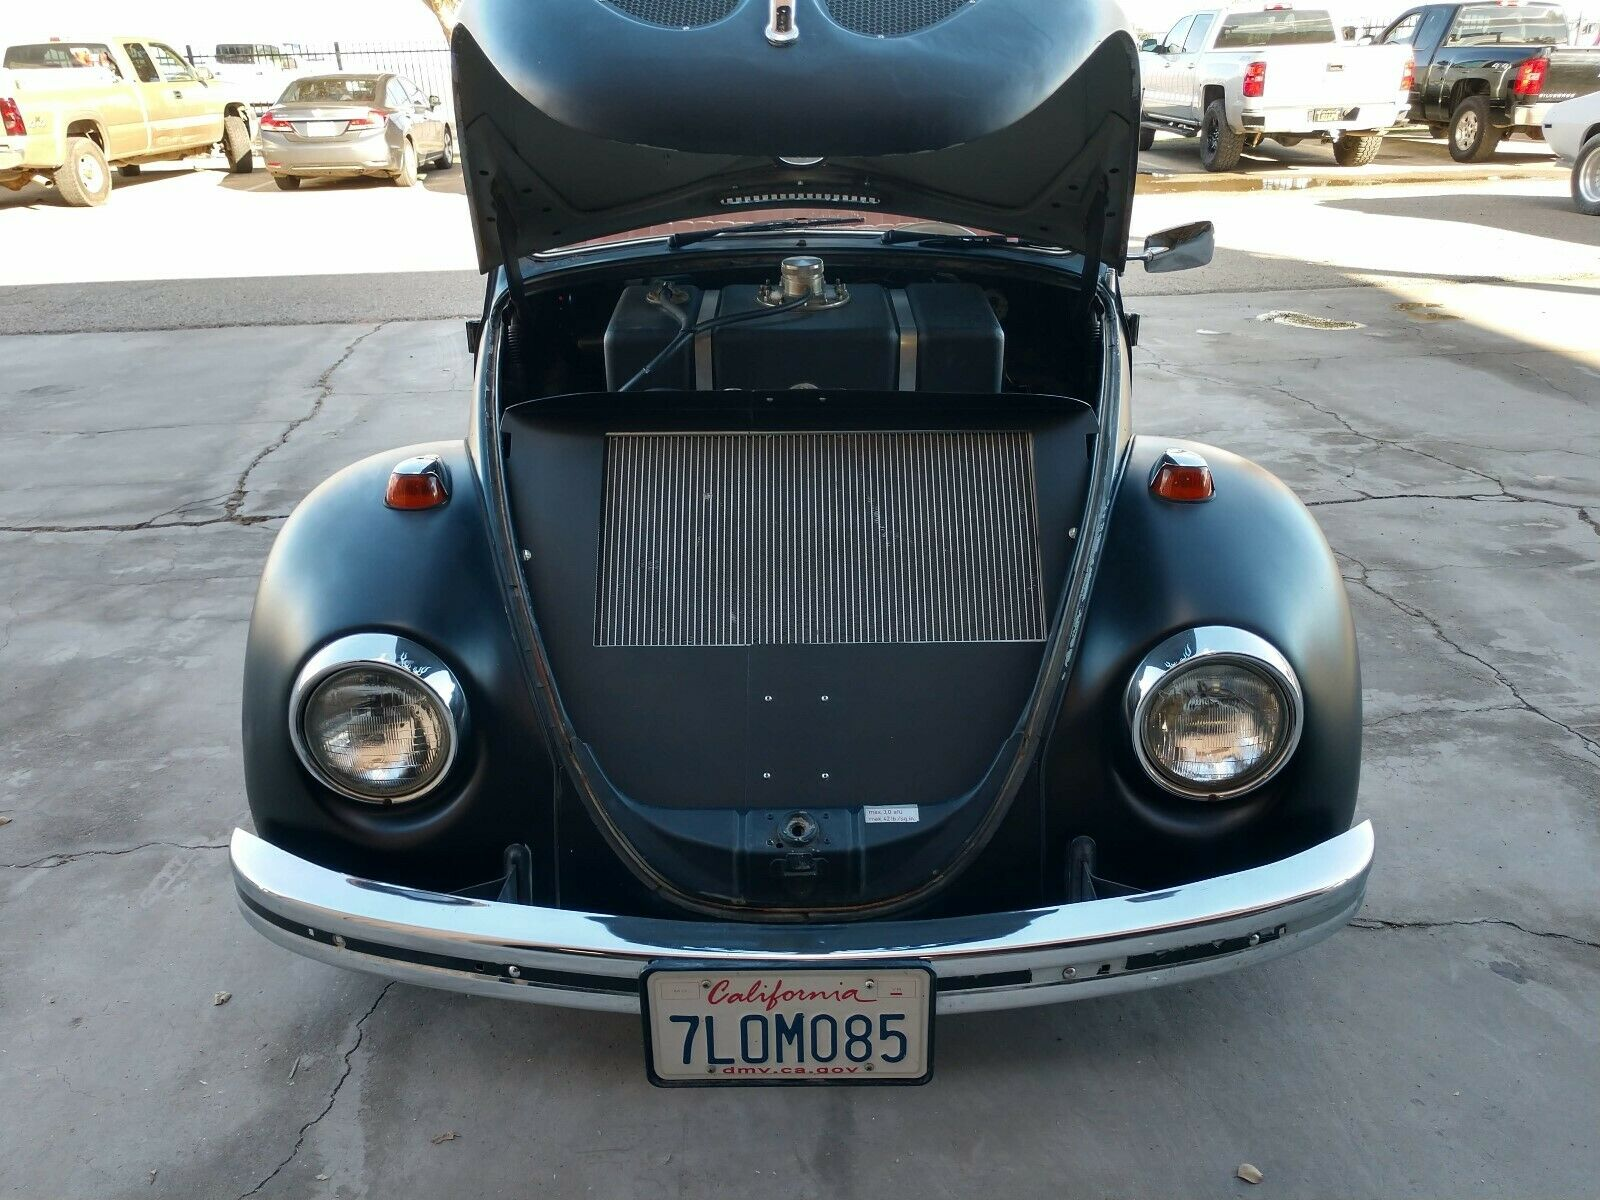 For Sale: 1968 Beetle with a 2 4 L Ecotec Inline-Four